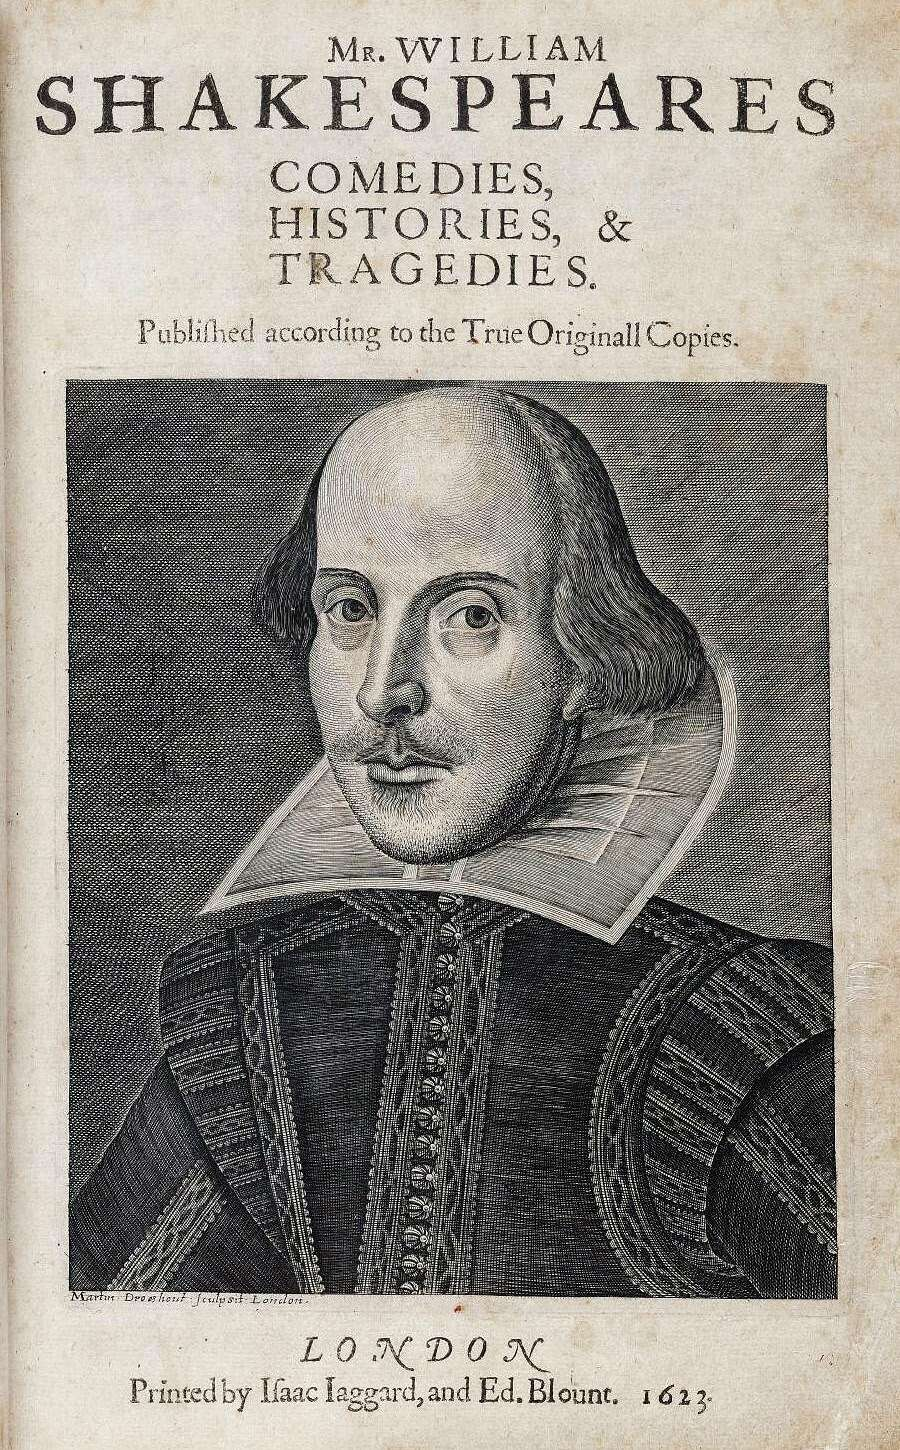 O Cosmo de William Shakespeare: a ausência do cânone